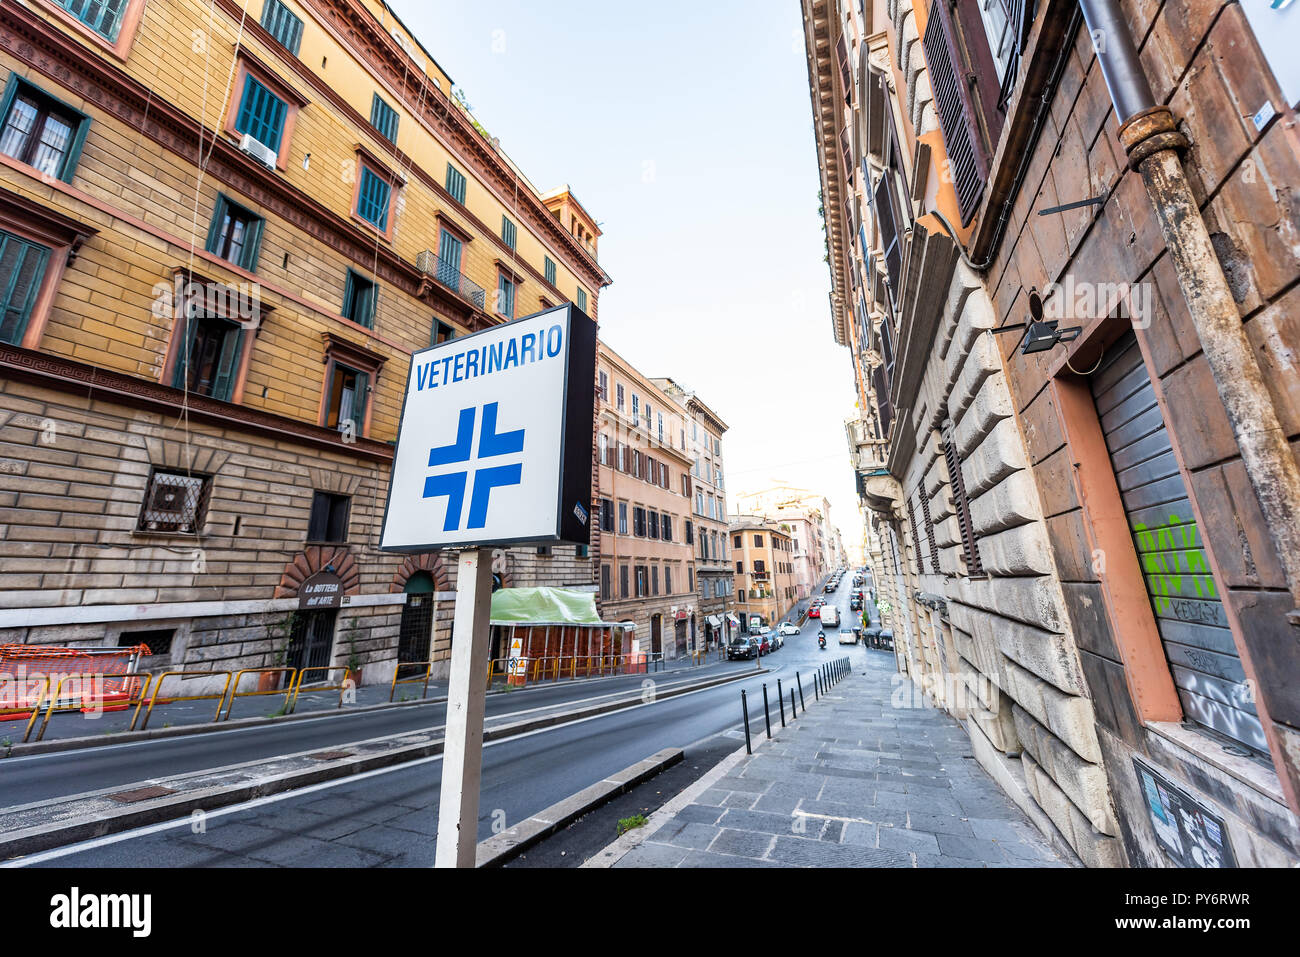 Rome, Italy - September 5, 2018: Italian street outside in city morning, wide angle empty road, nobody, closeup of Veterinarian veterinario sign, in M - Stock Image